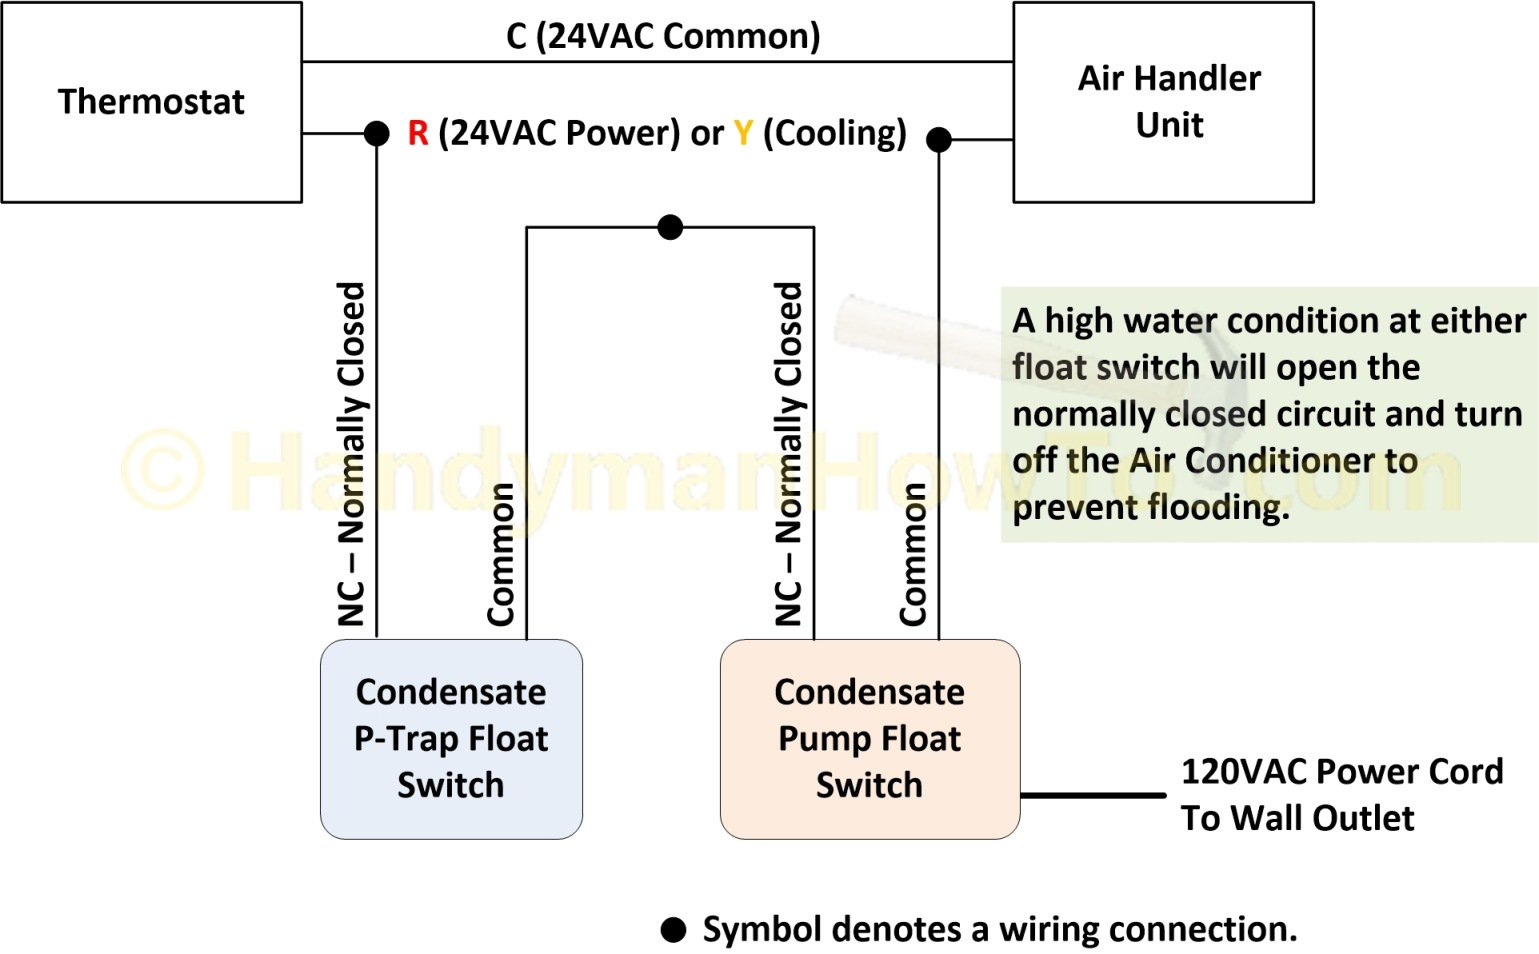 septic pump float switch wiring diagram Download-Septic Tank Float Switch Wiring Diagram Best How to Replace A Broken Air Conditioner Condensate 15-r